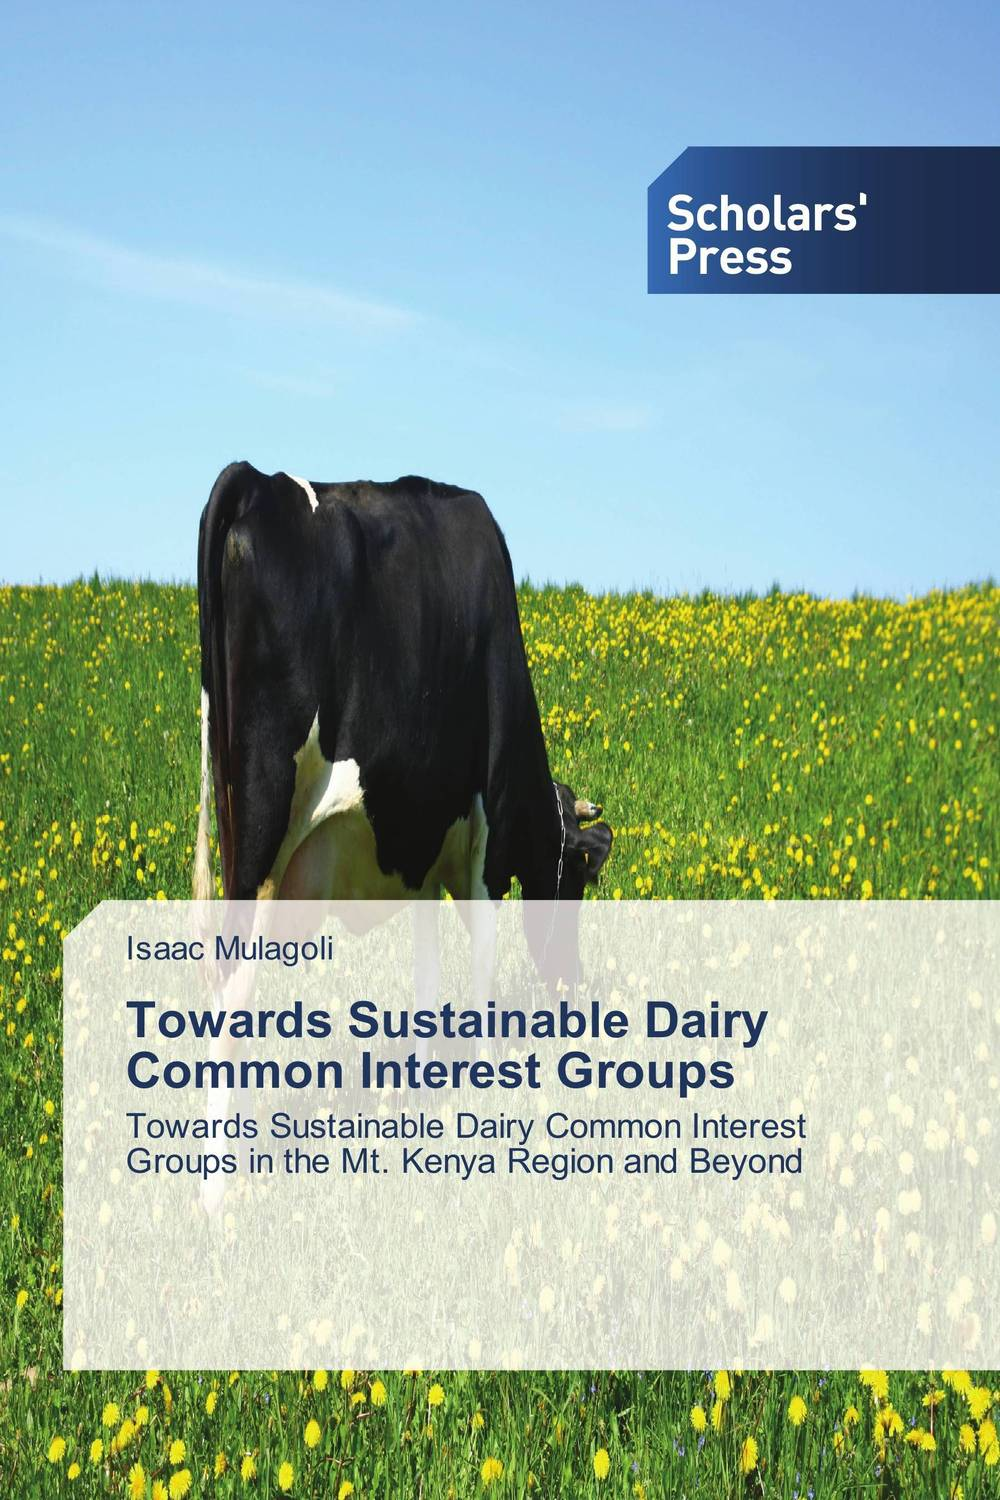 Towards Sustainable Dairy Common Interest Groups driven to distraction